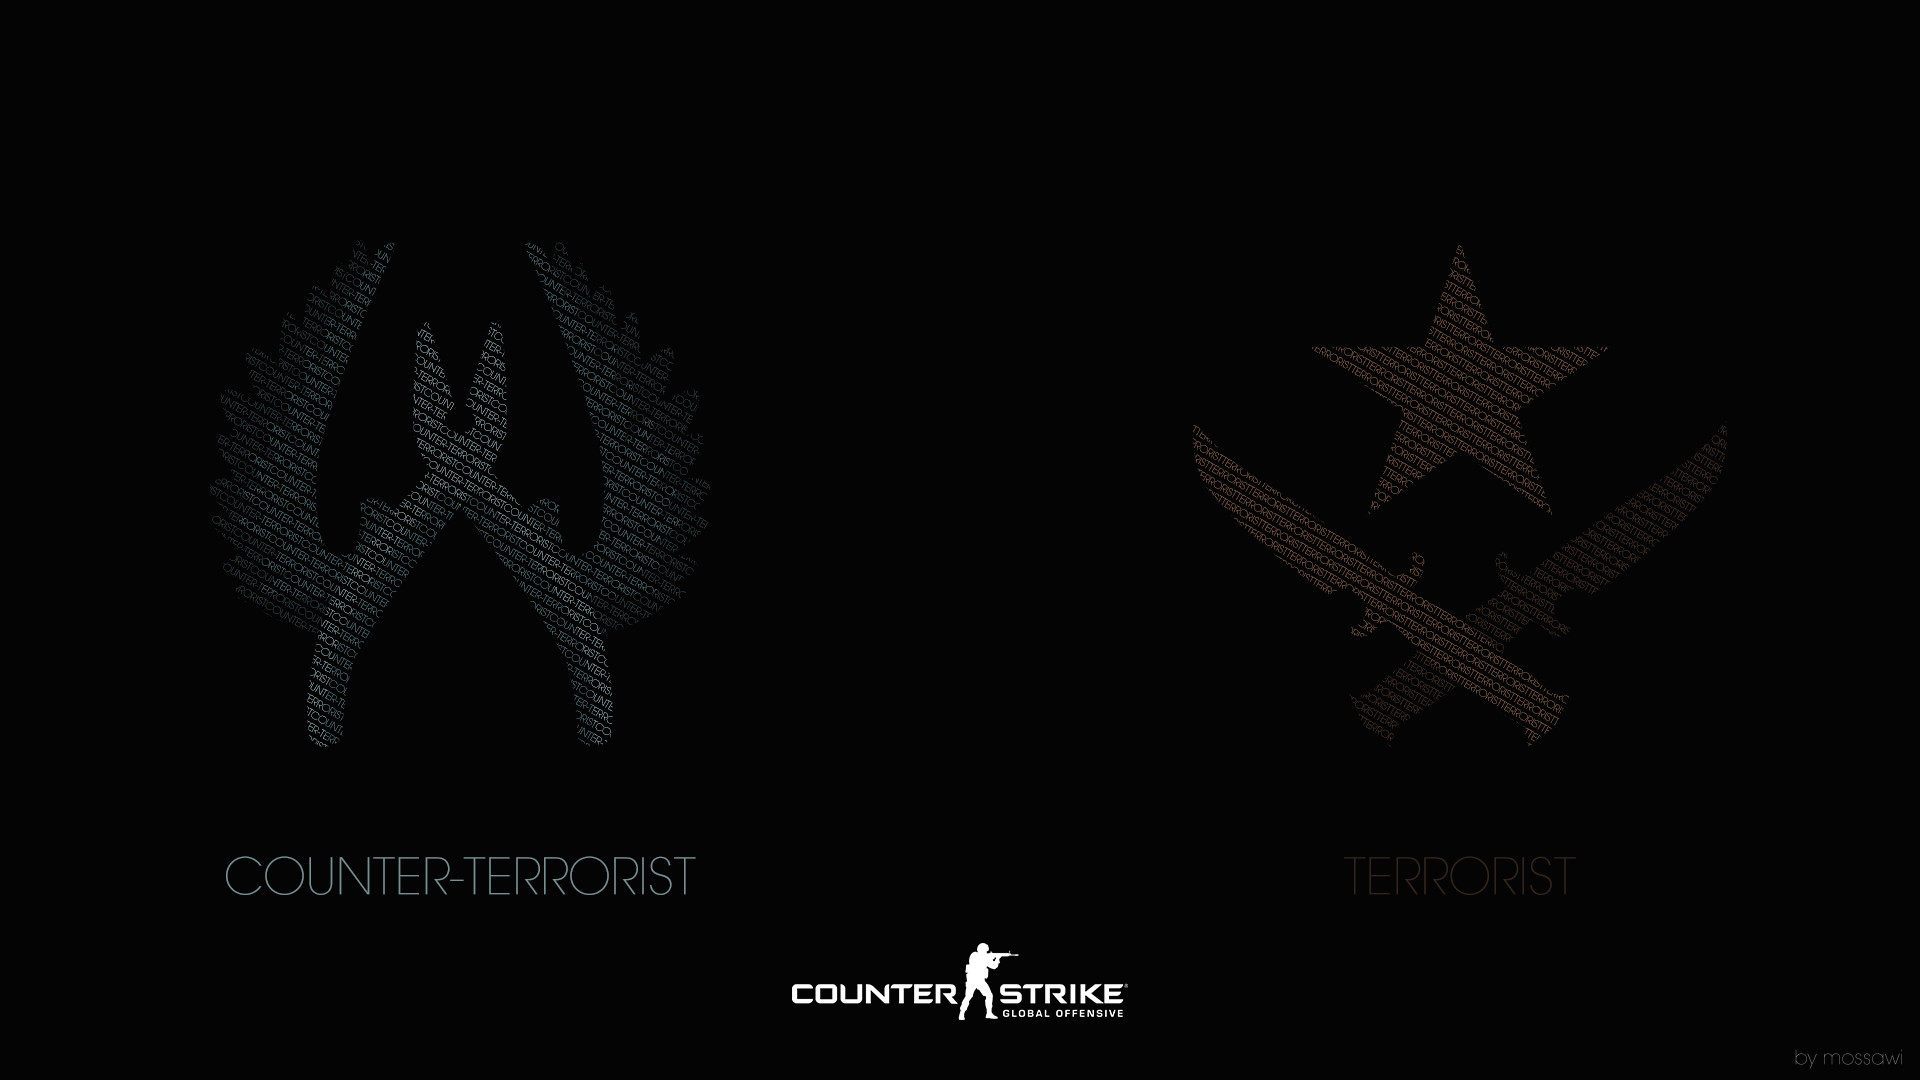 … https://www.mossawi.nl/csgo/assets/images/original/ct_t_background.png